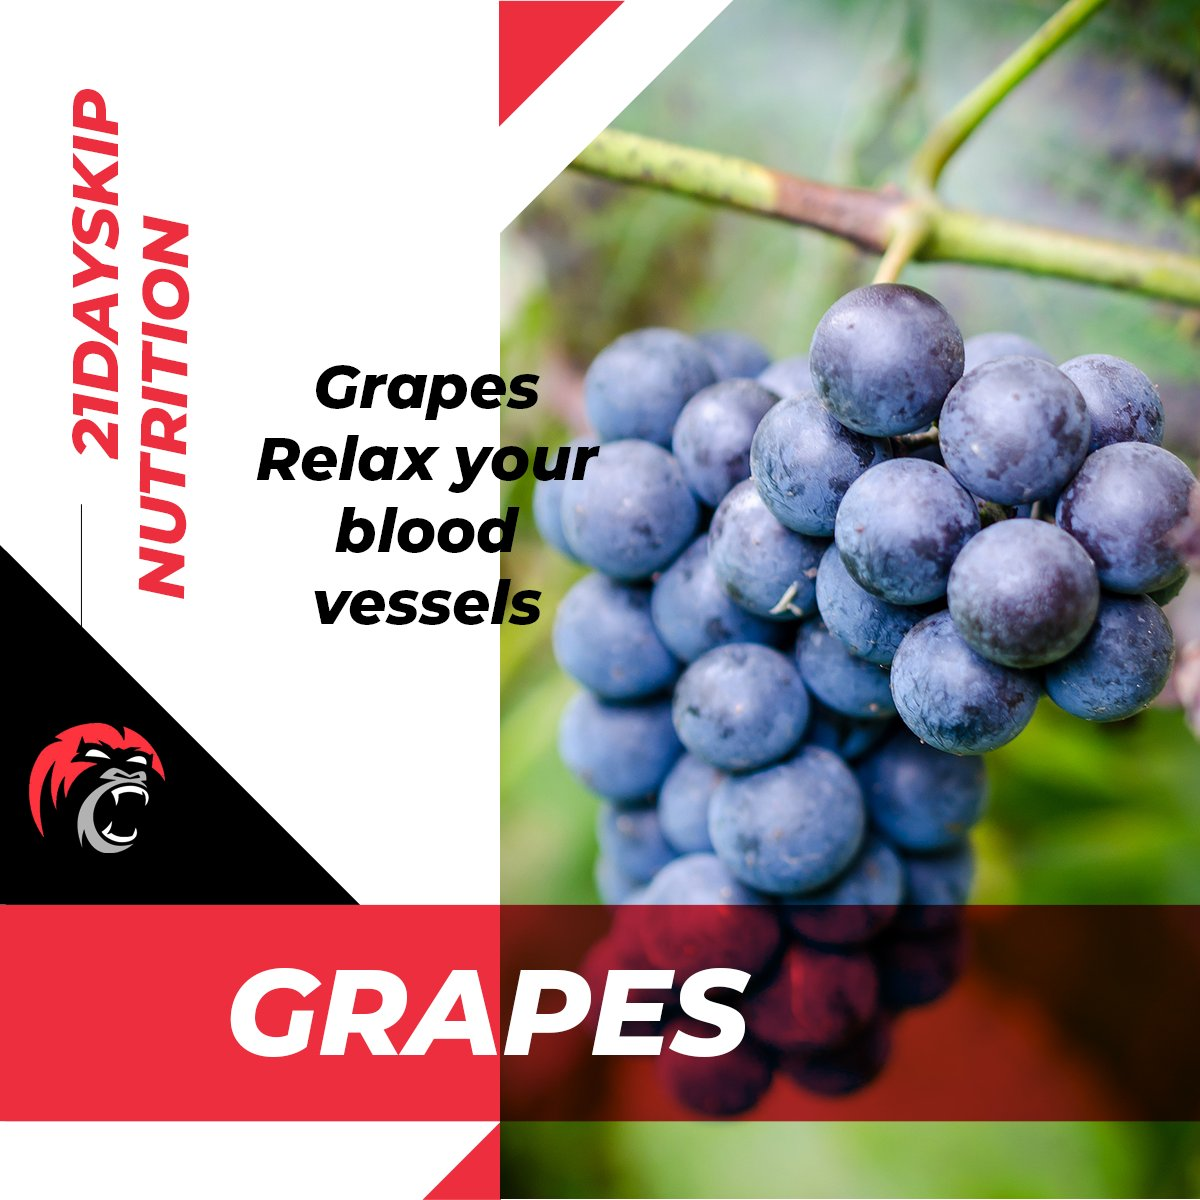 #grapes #fruits #nutrition #21dayskip #skipping #SkipRope #jumprope #functionalfitness #dumbellworkout #workout #weightlossjourney #getfit #jumprope #homeworkouts #workoutmotivation #fit #fitmoms #train #gym #fetchyourbody2020pic.twitter.com/tO68MY3haK